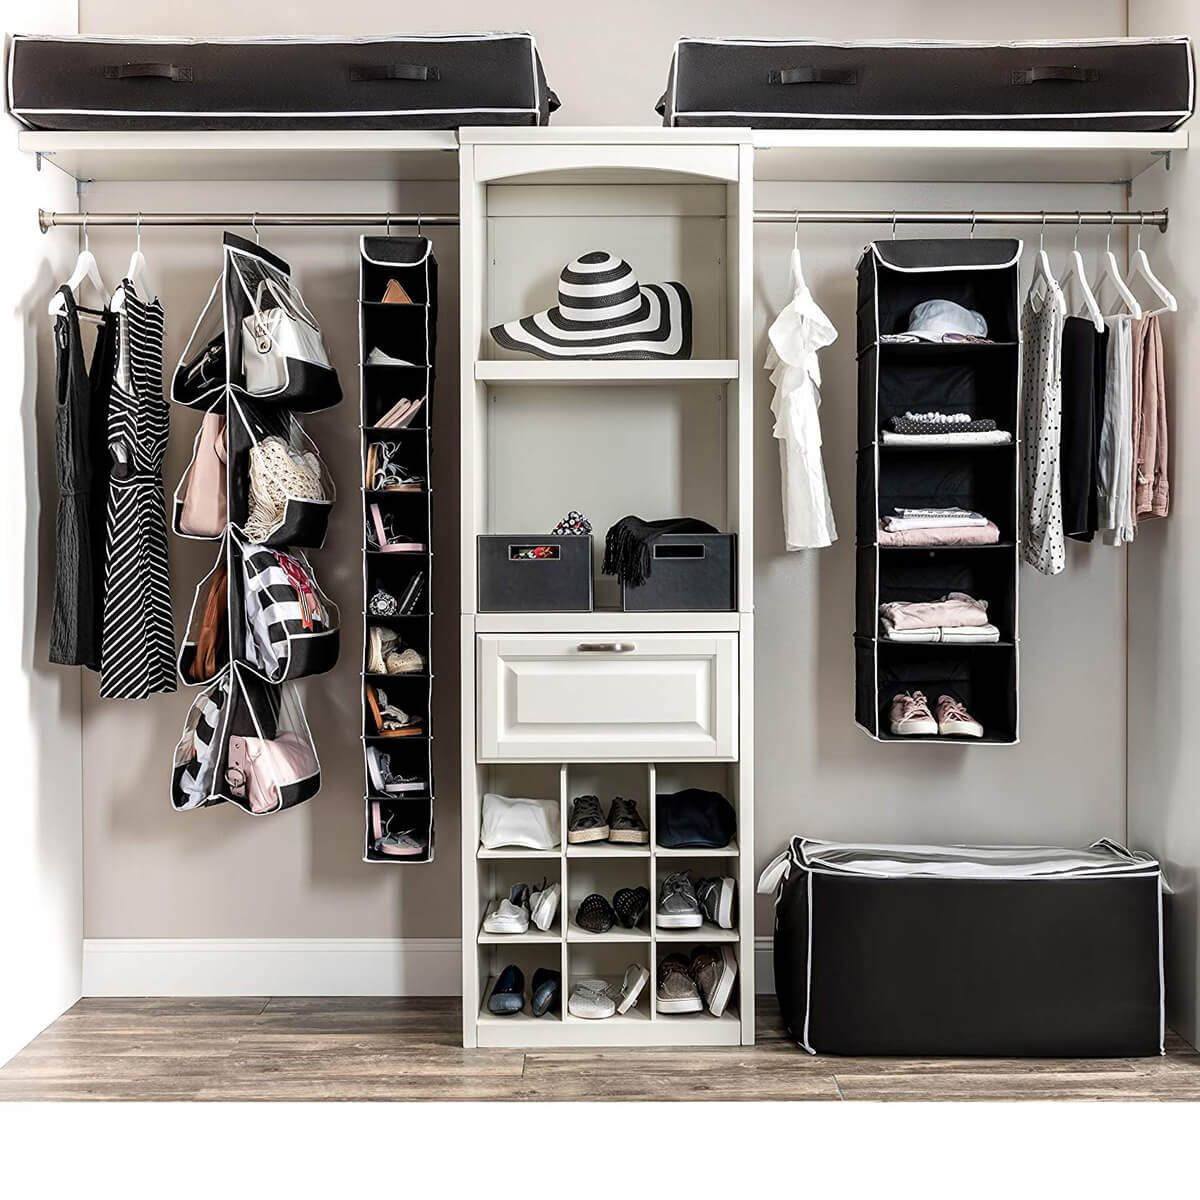 26 Stylish Closet Organizers To Stop The Clutter And Improve Your